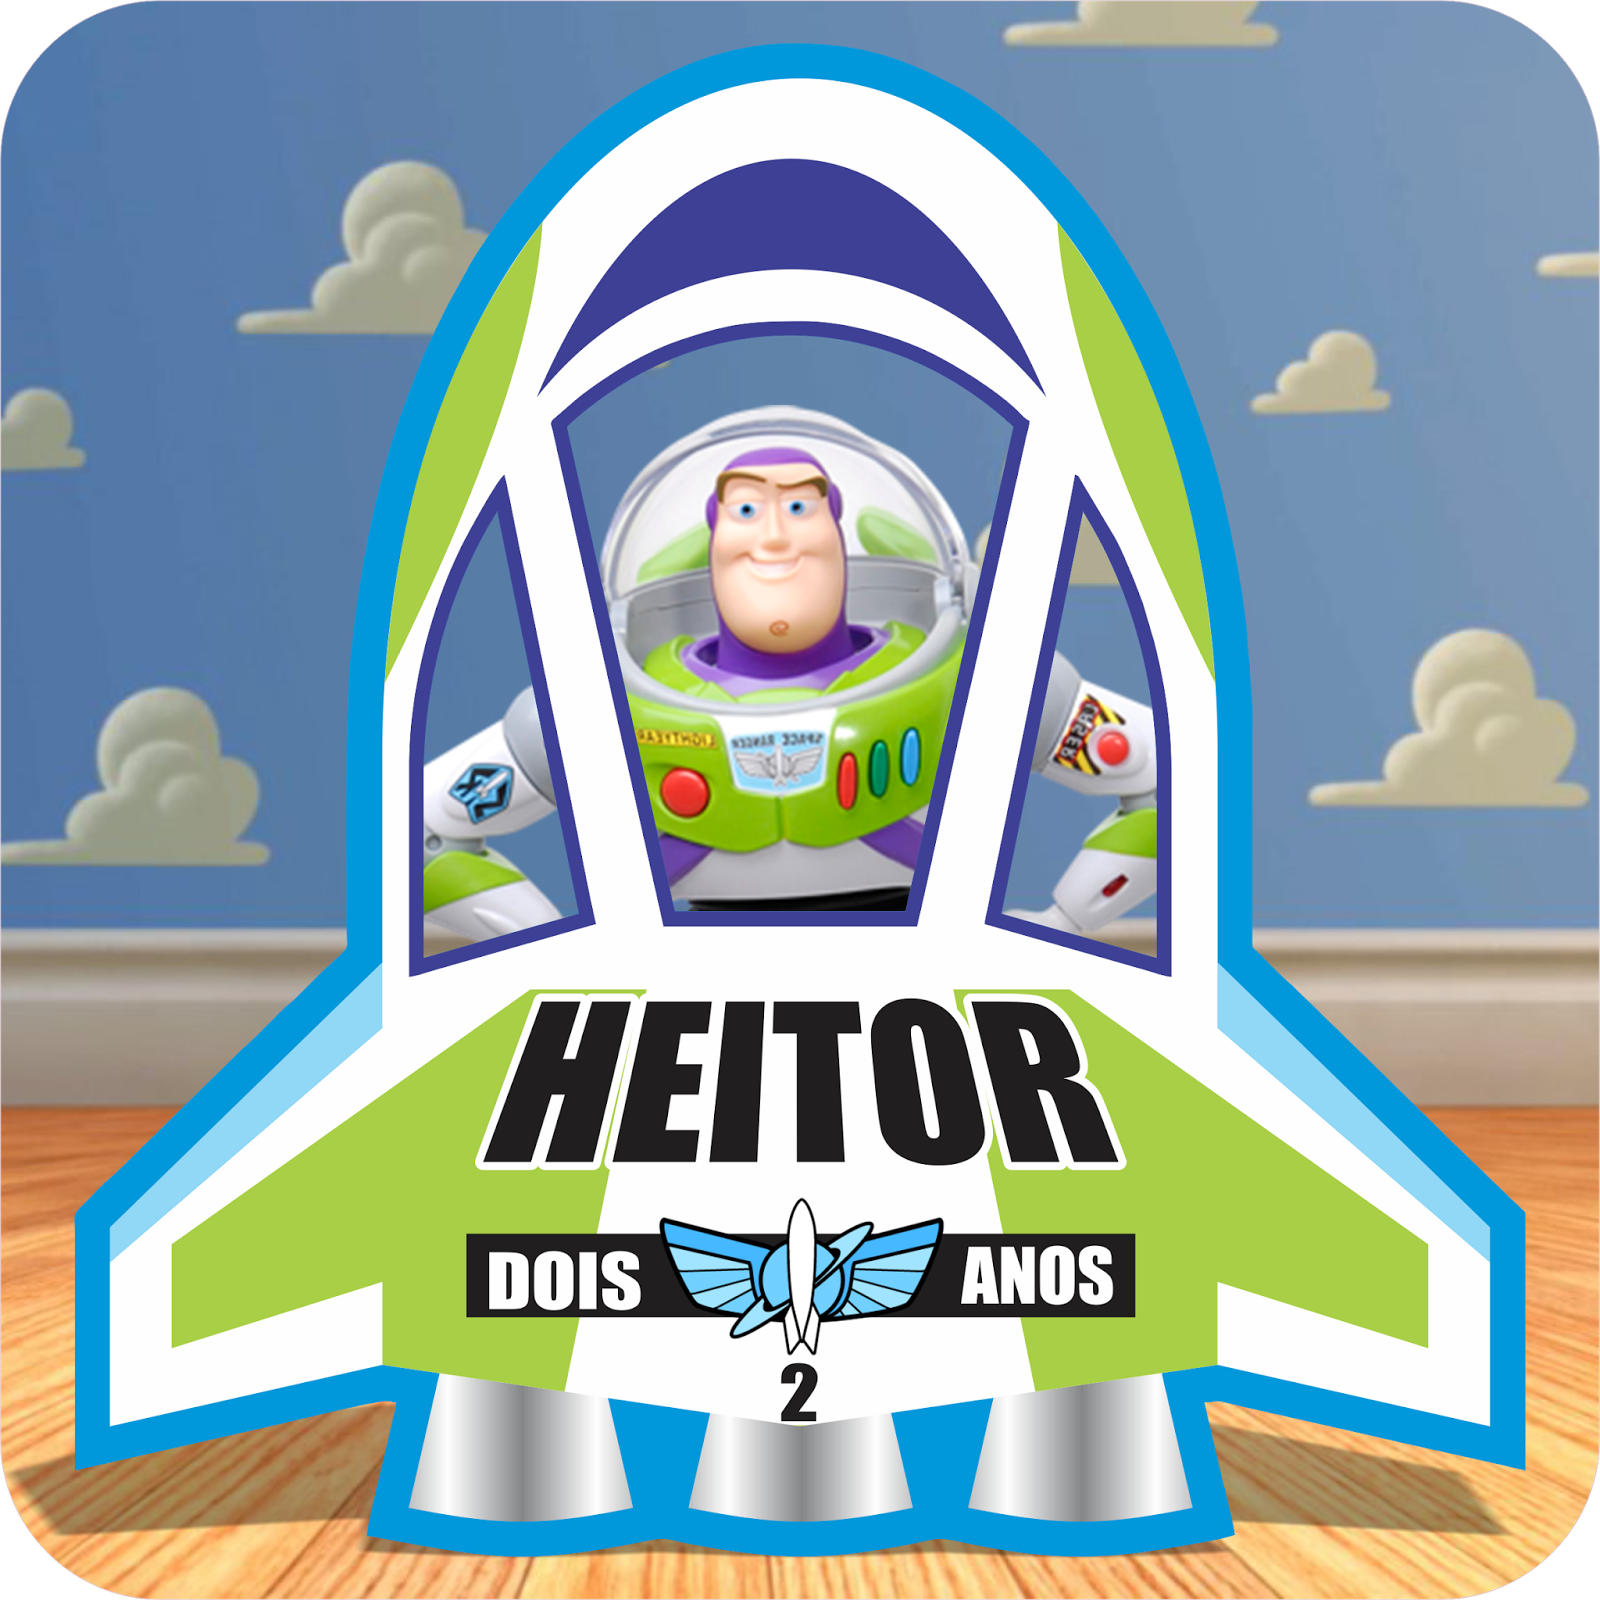 https://fruipartis.blogspot.com.br/2017/04/toy-story-heitor.html